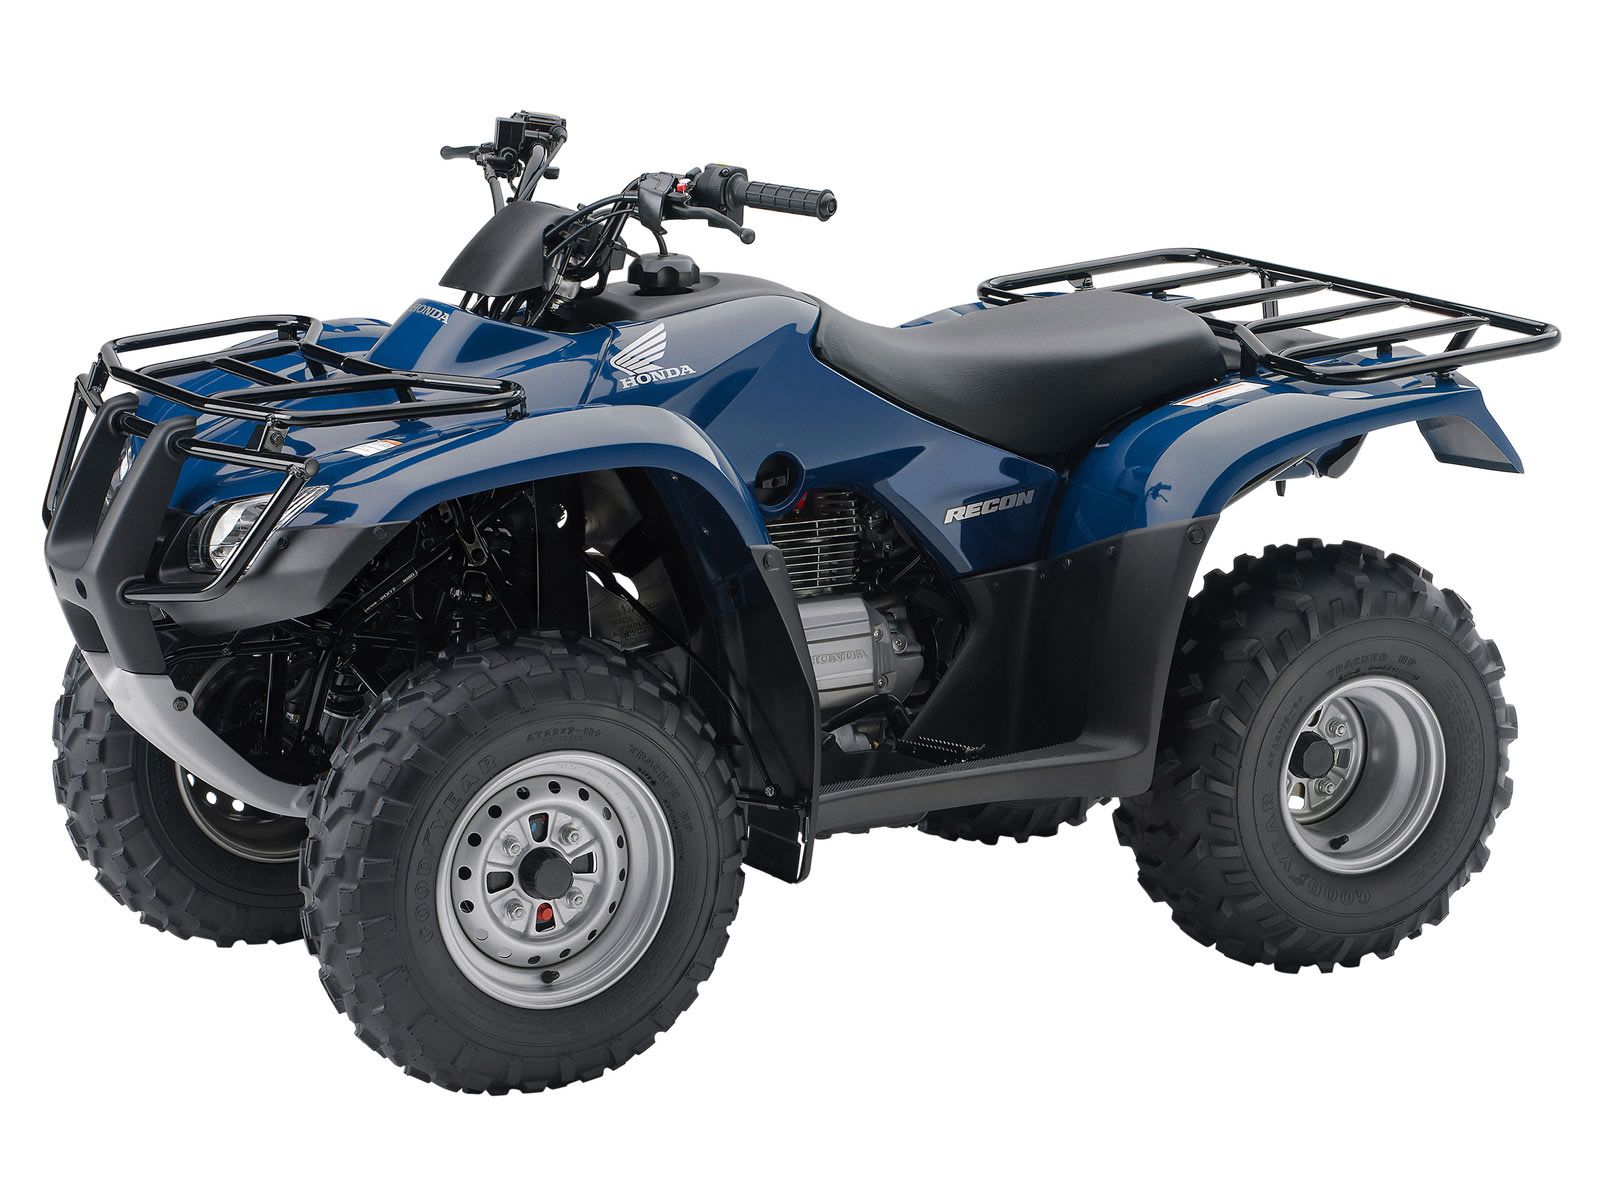 honda atv wallpapers 2008 fourtrax recon. Black Bedroom Furniture Sets. Home Design Ideas